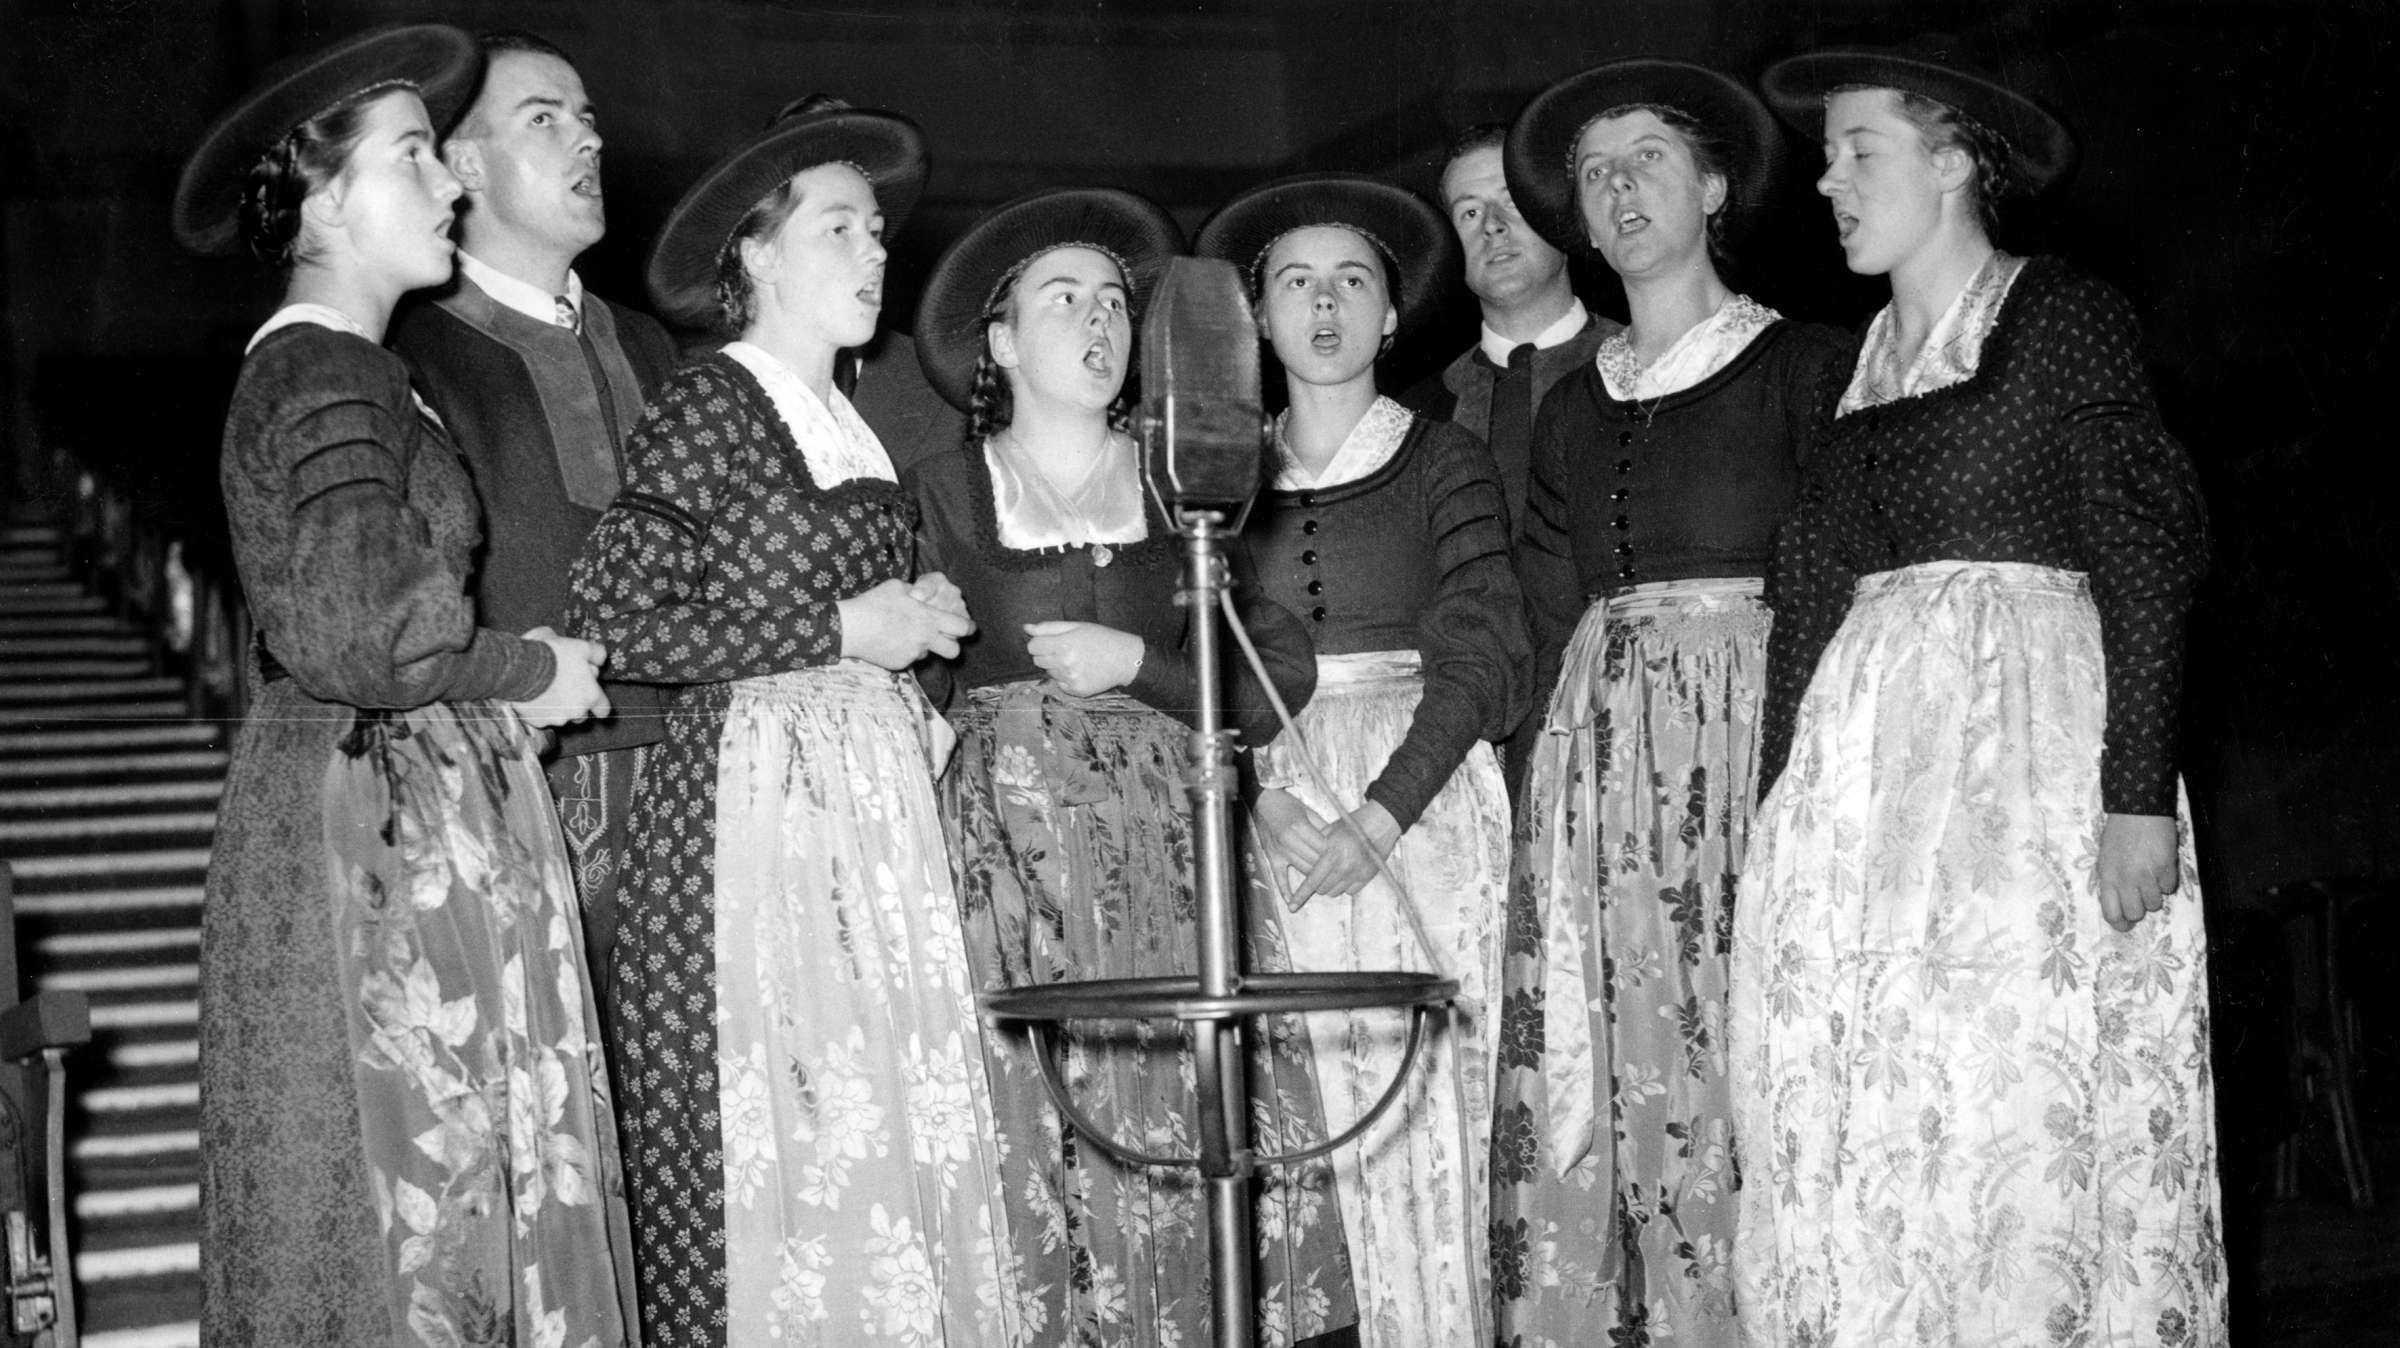 The Real History Behind The Sound of Music